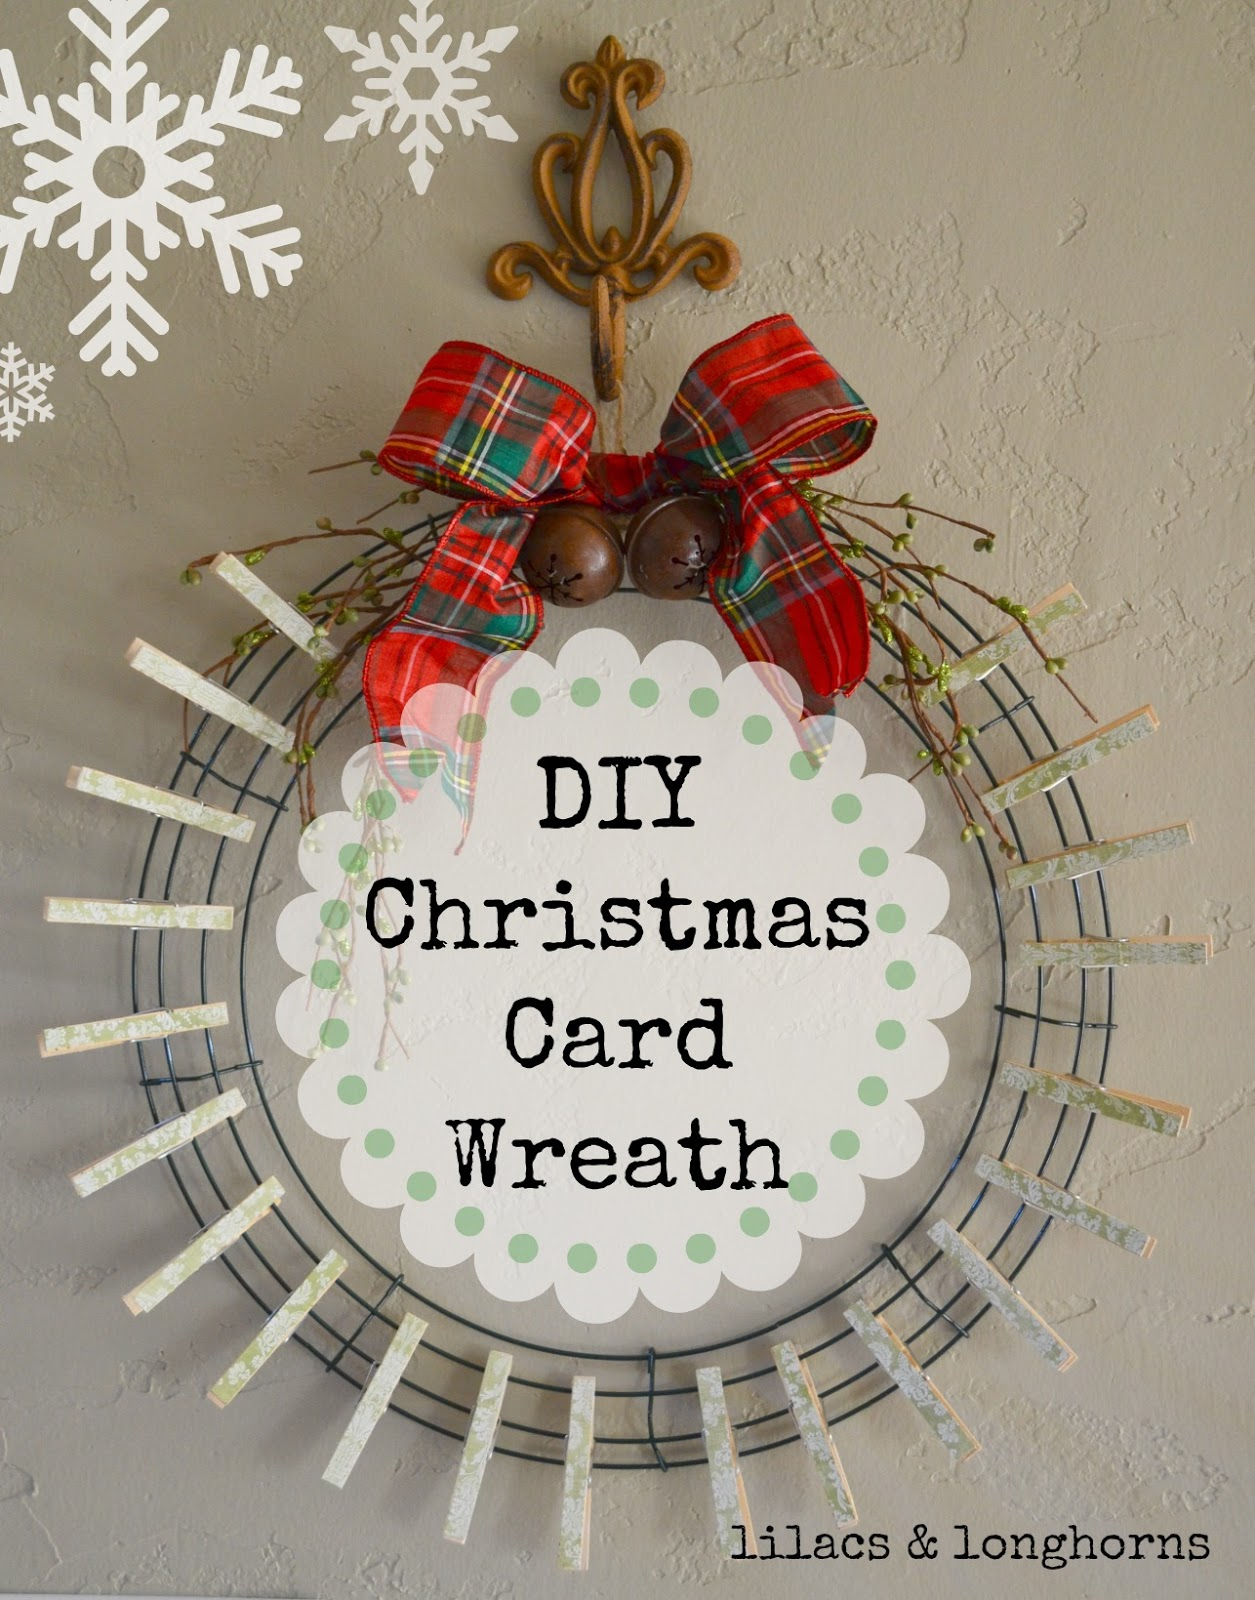 diy christmas card wreath - Cheap Christmas Cards Photo